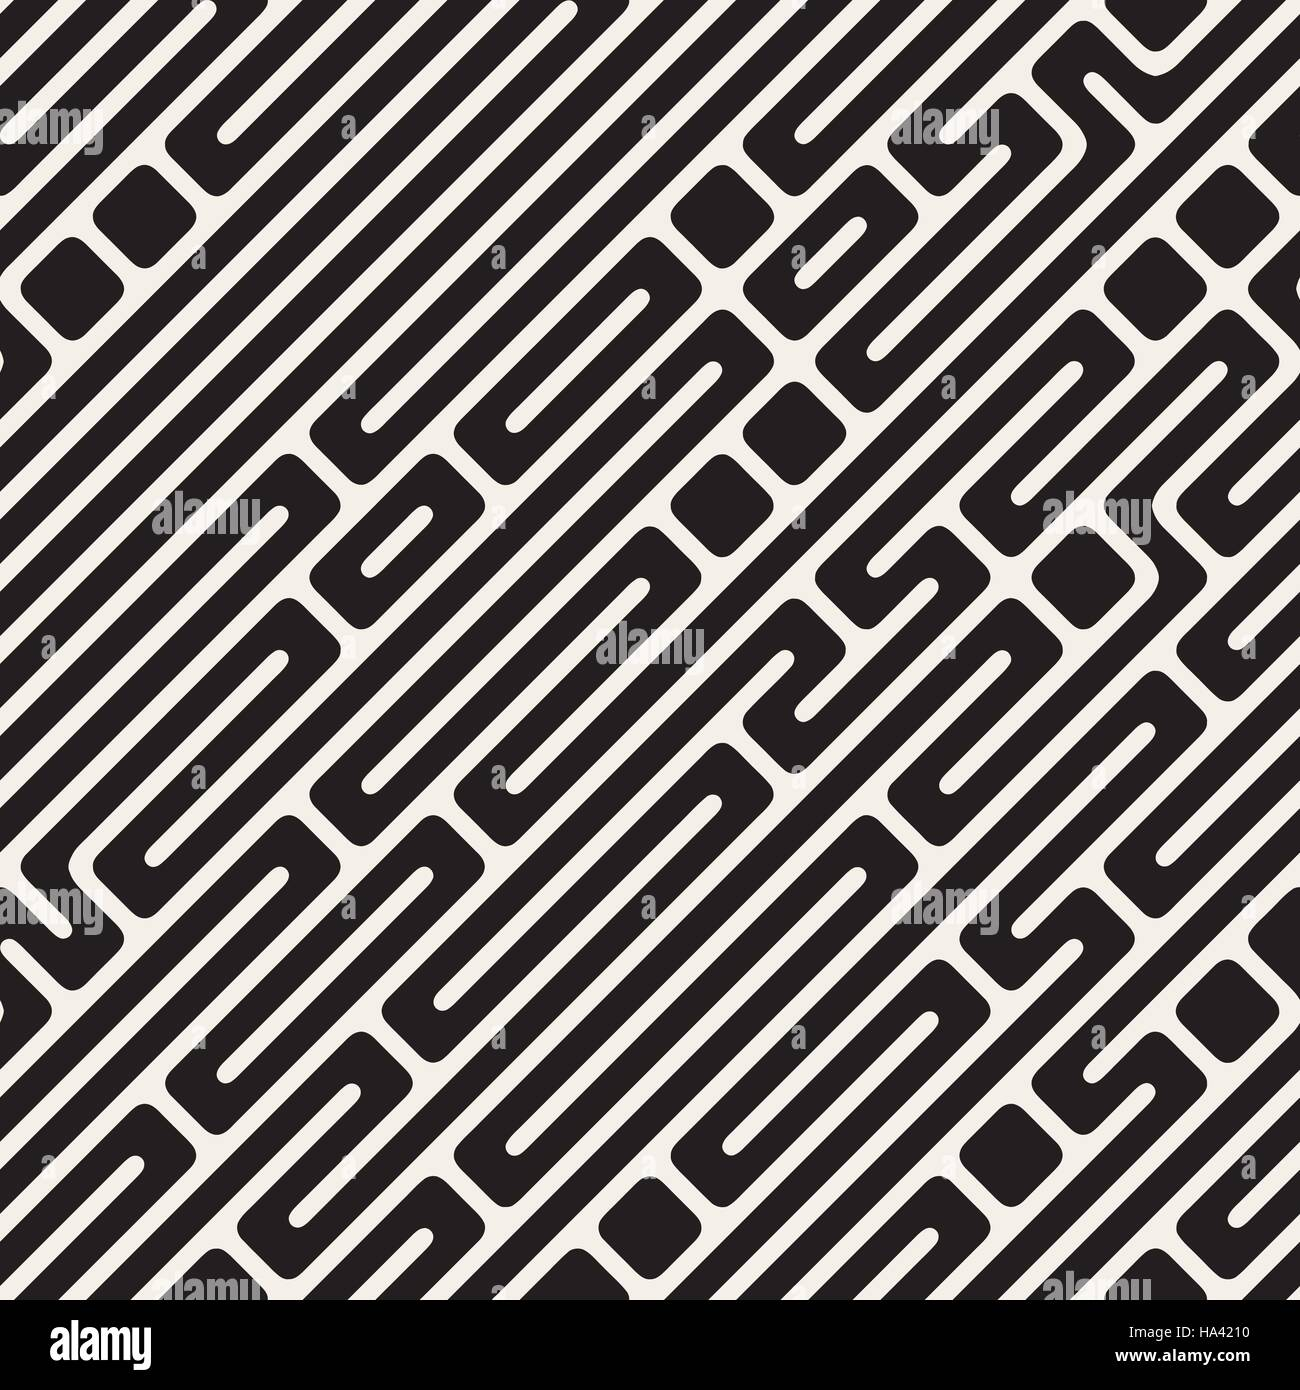 Vector Seamless Black and White Diagonal Maze Lines Pattern - Stock Image